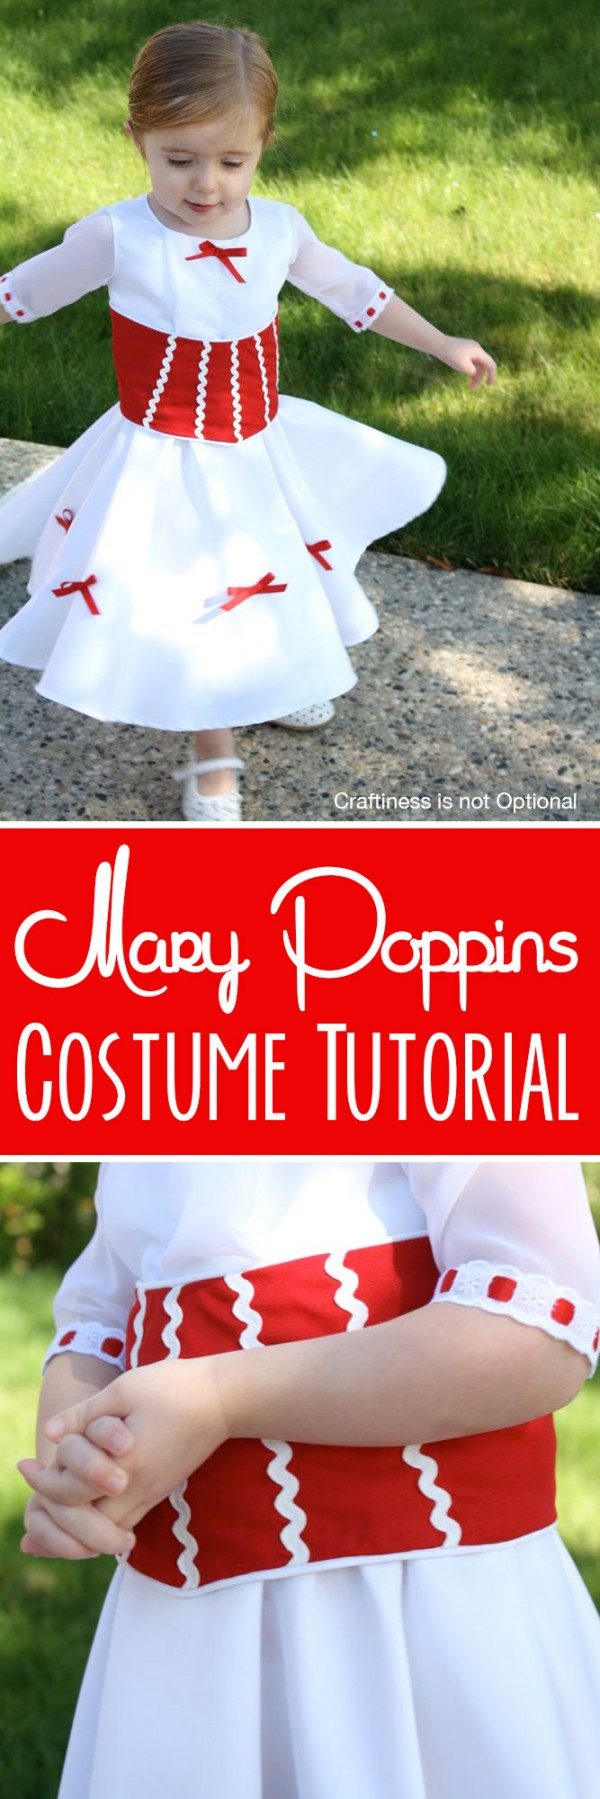 mary-poppins-tutorial